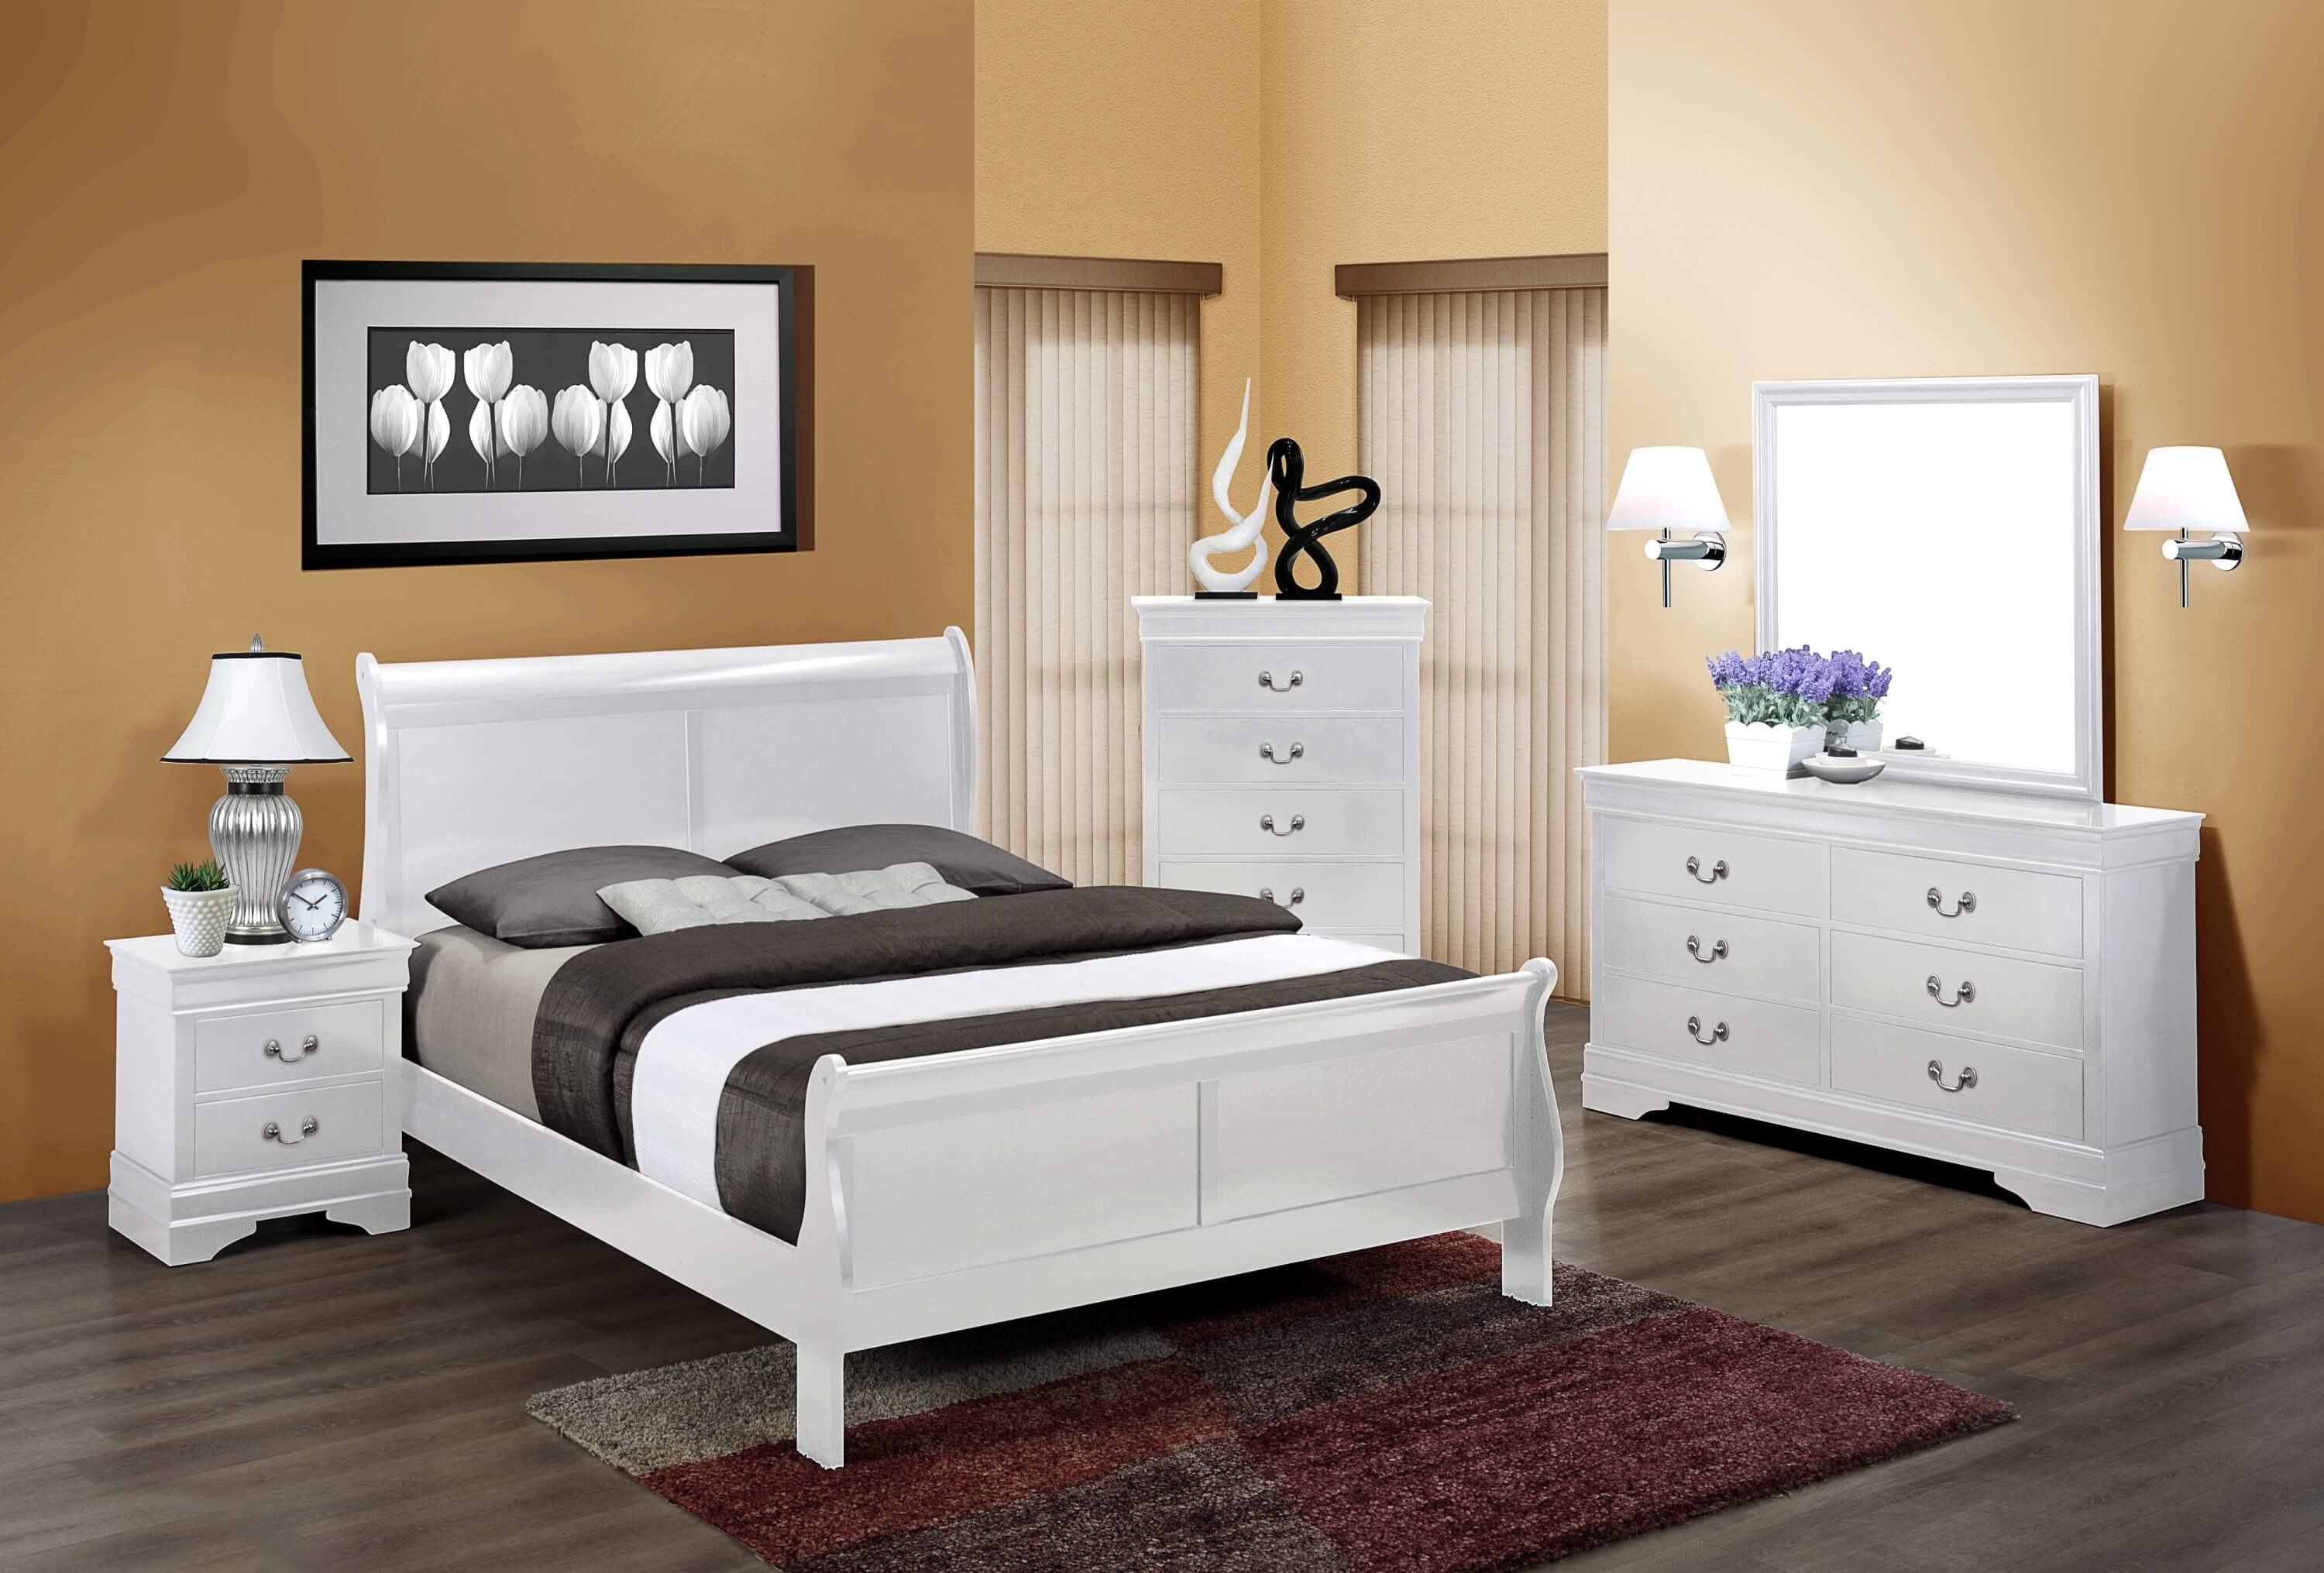 Bedroom Furniture Sets. White Louis Philip Bedroom Set   Bedroom Furniture Sets